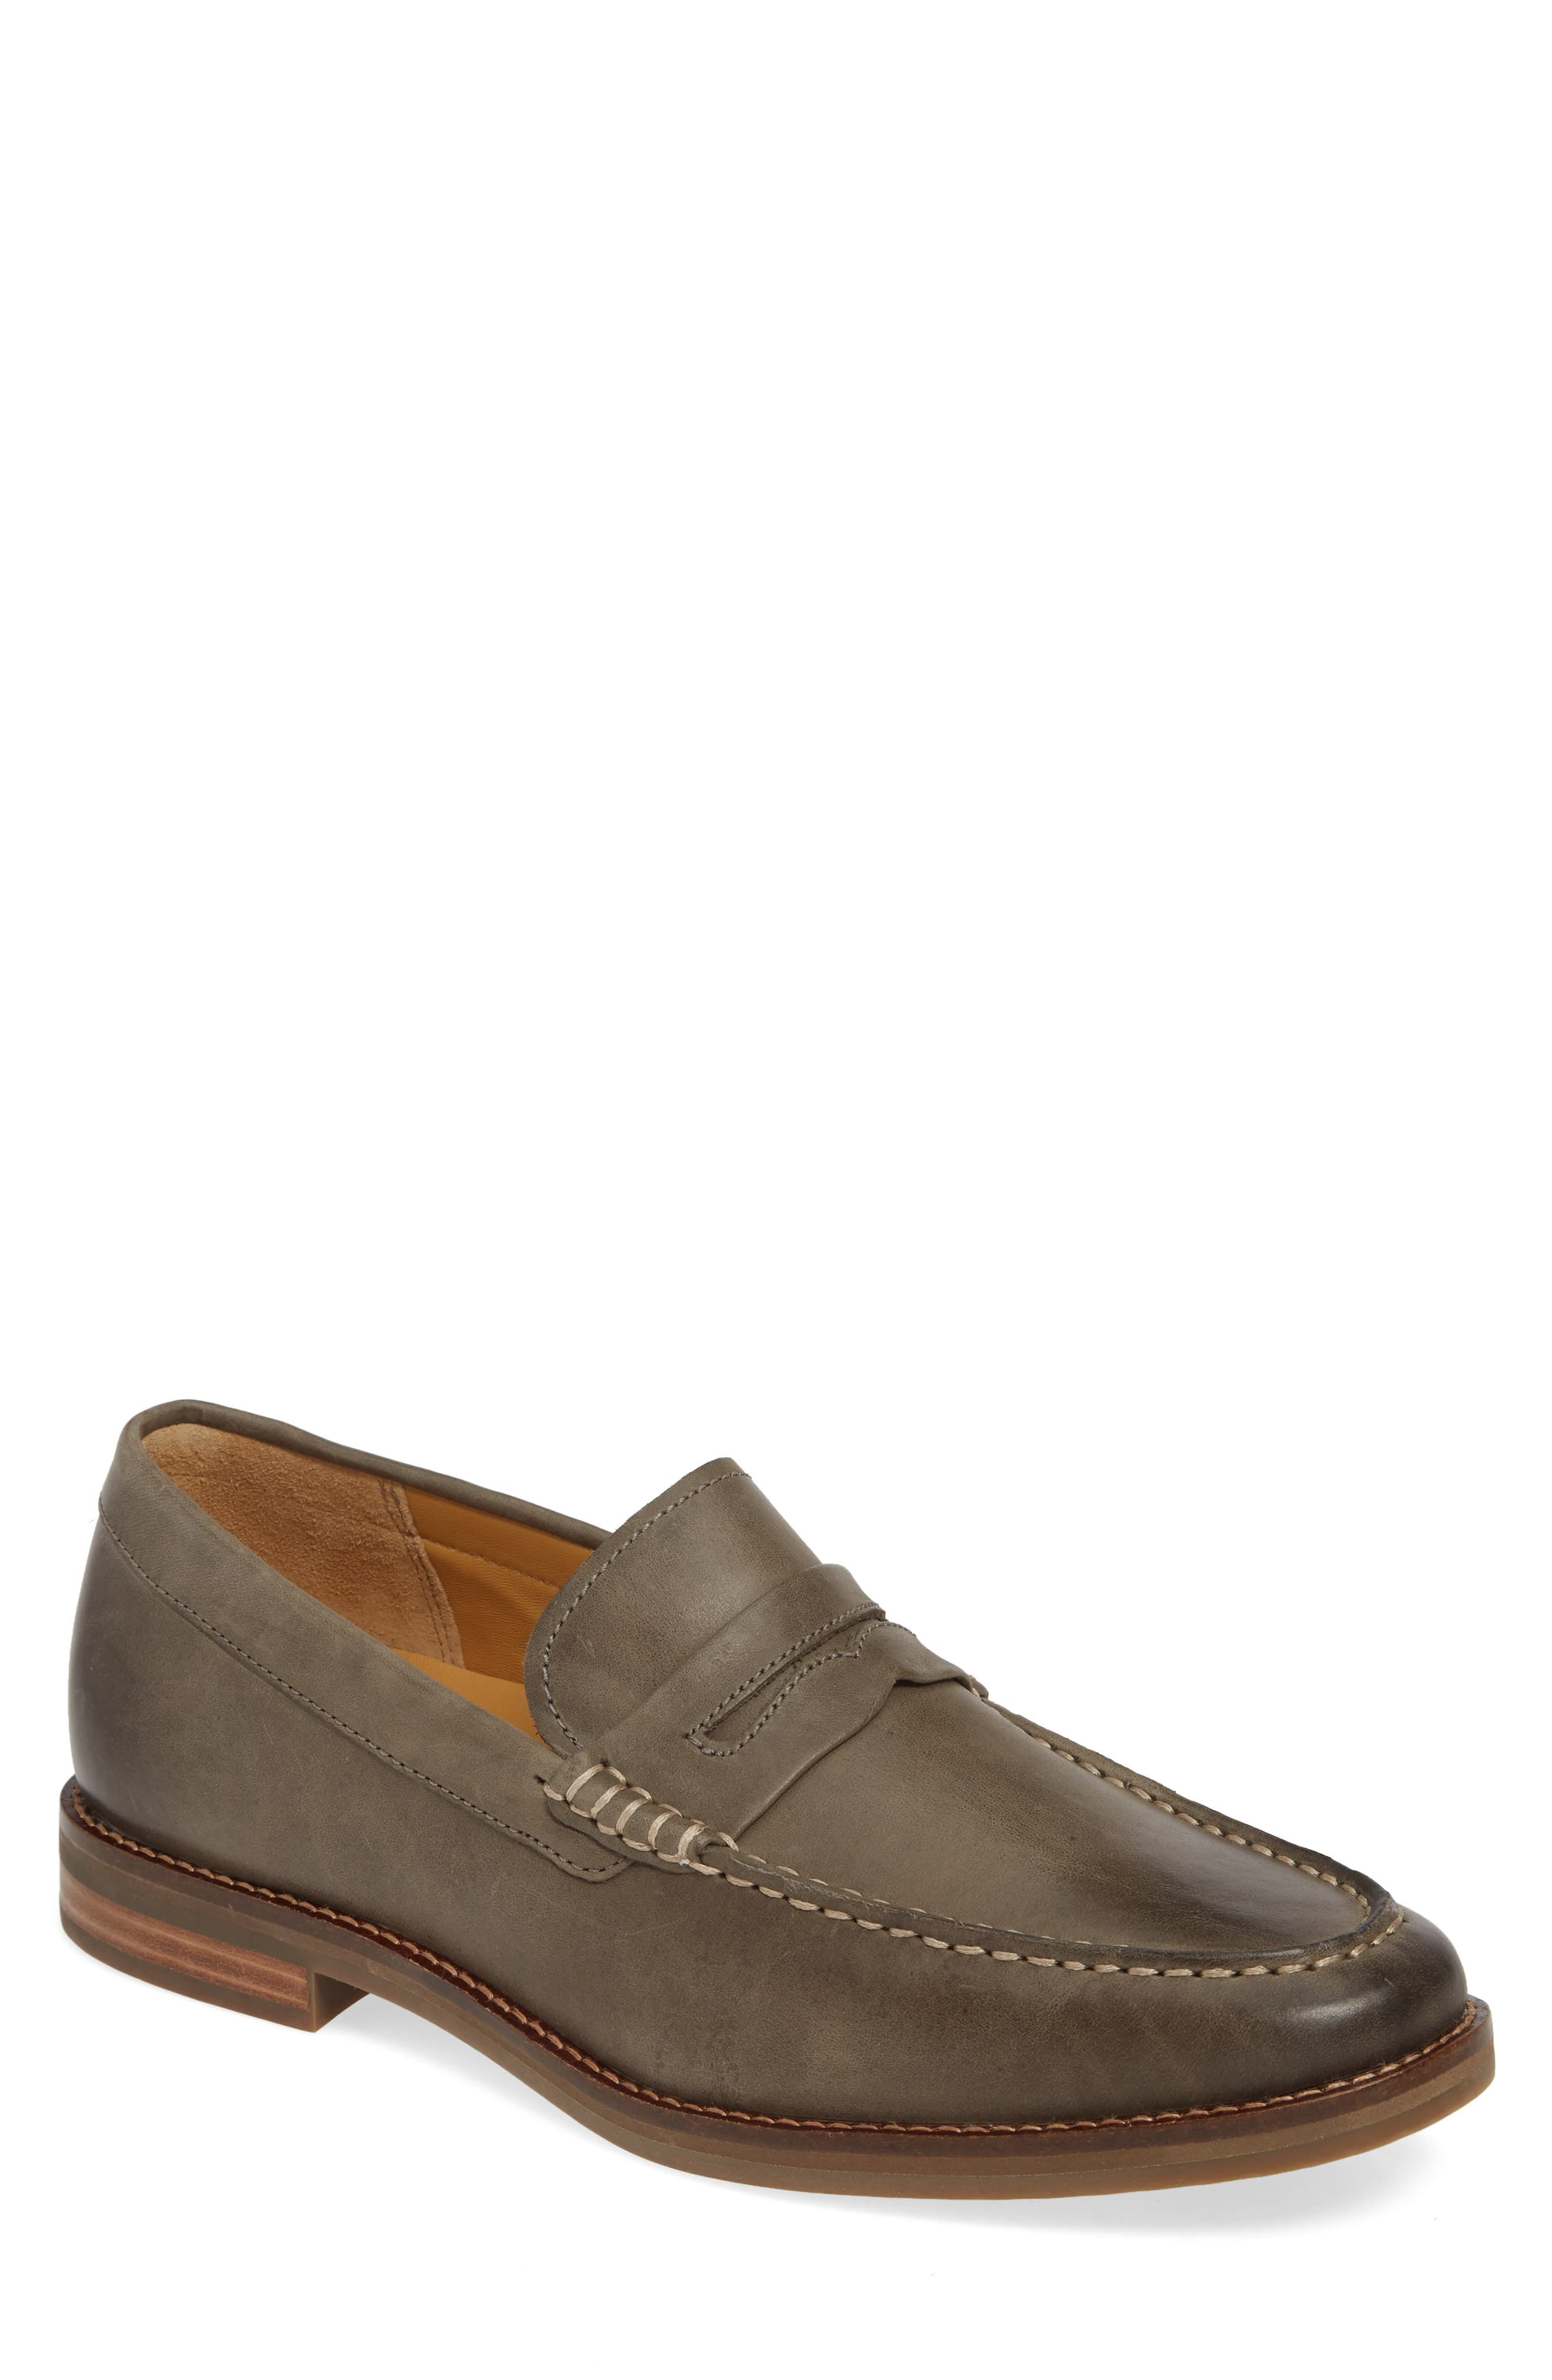 7b357e2350f5e Men's Sperry Exeter Penny Loafer, Size 7.5 M - Grey in 2019 ...